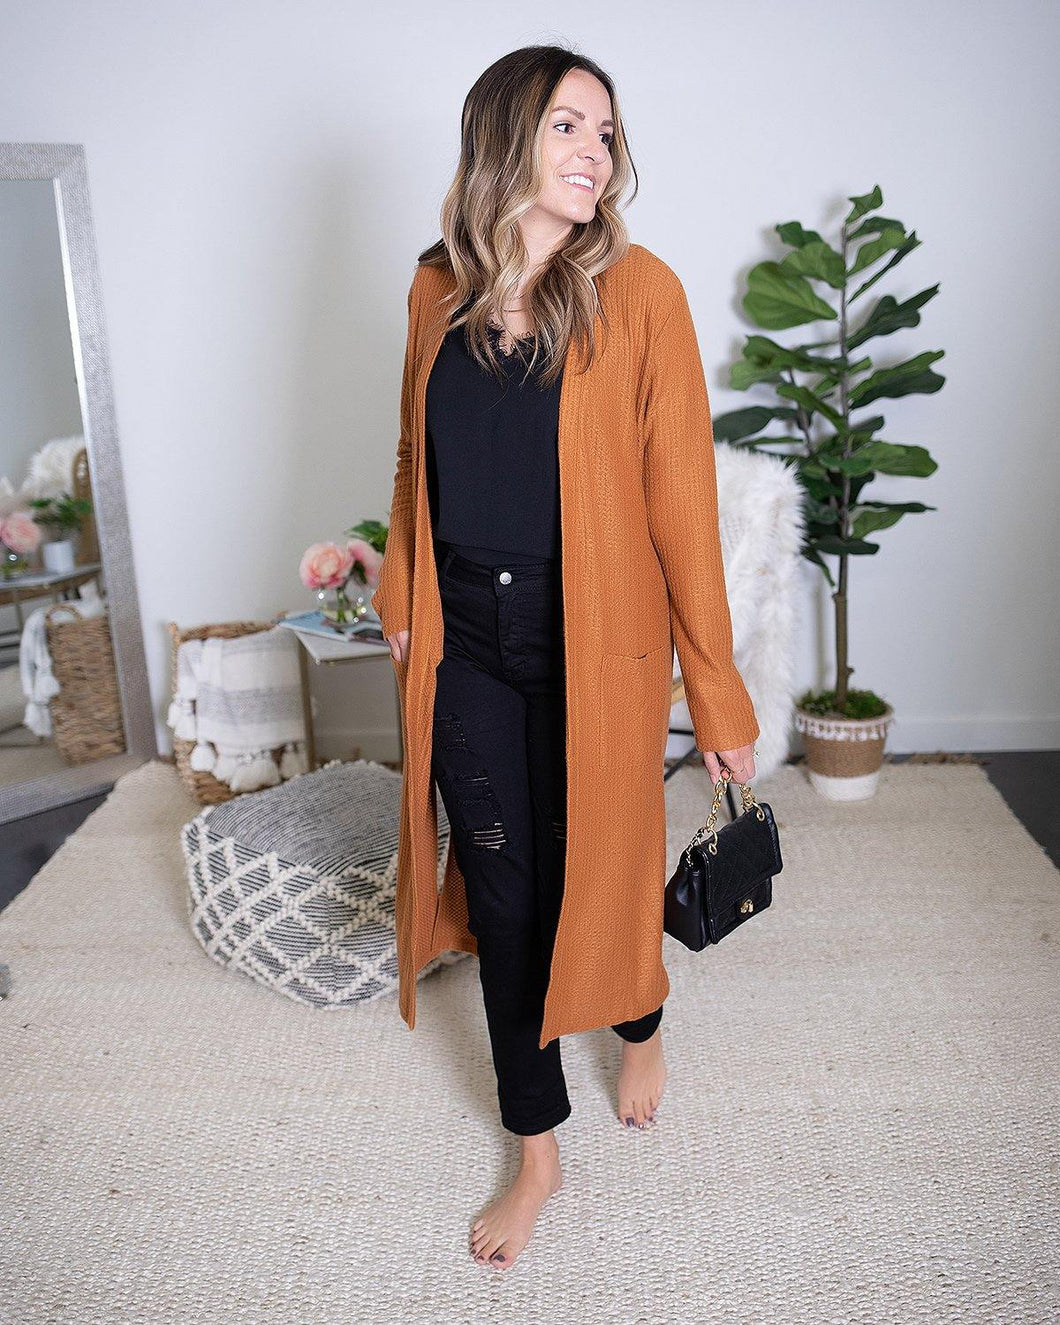 Camel Duster Cardigan - The Local Women's Boutique Clothing